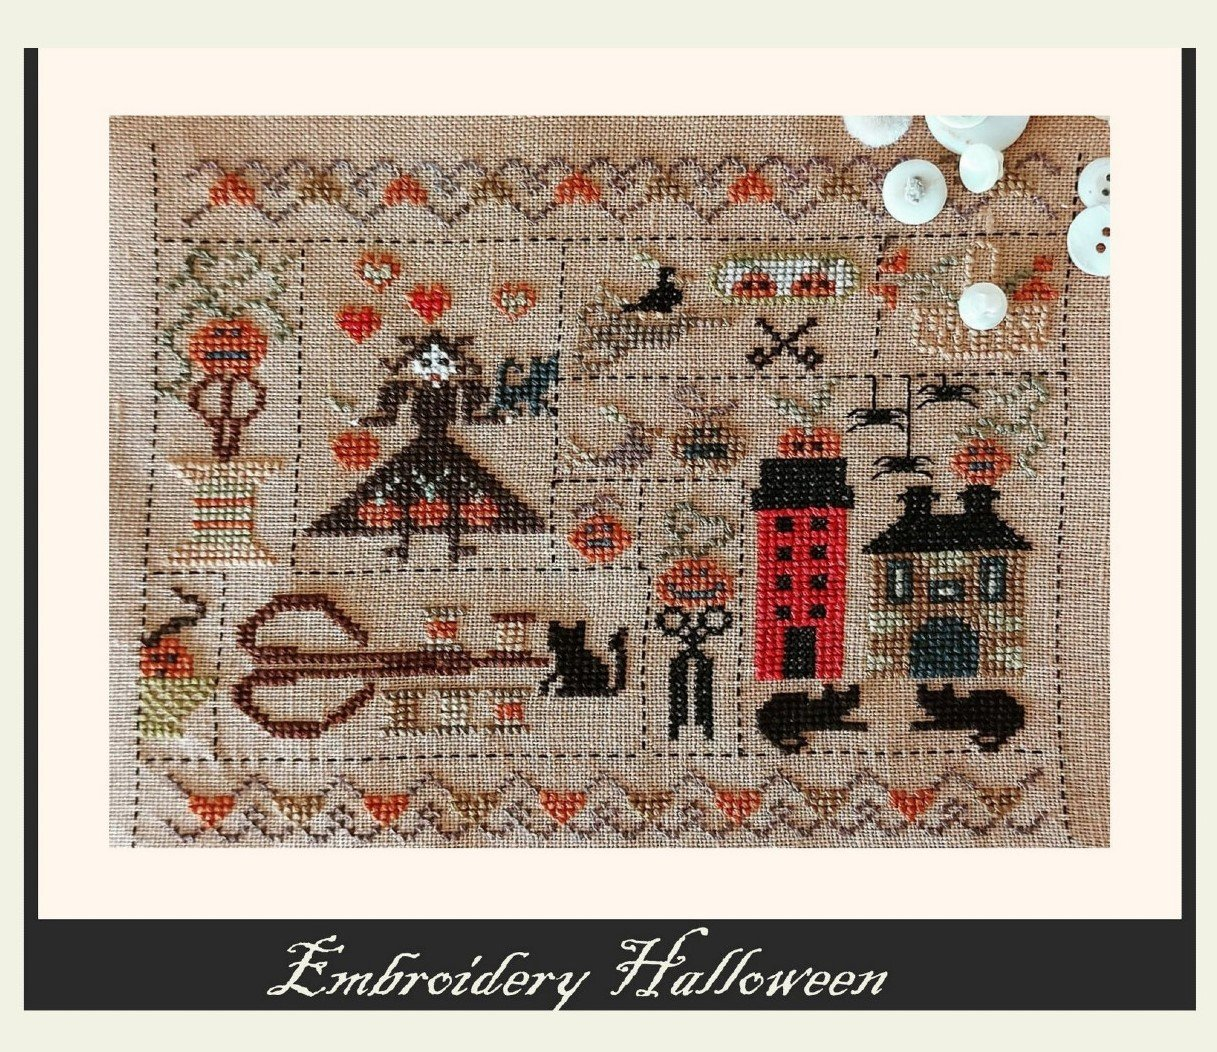 Embroidery Halloween chart - Nikyscreations